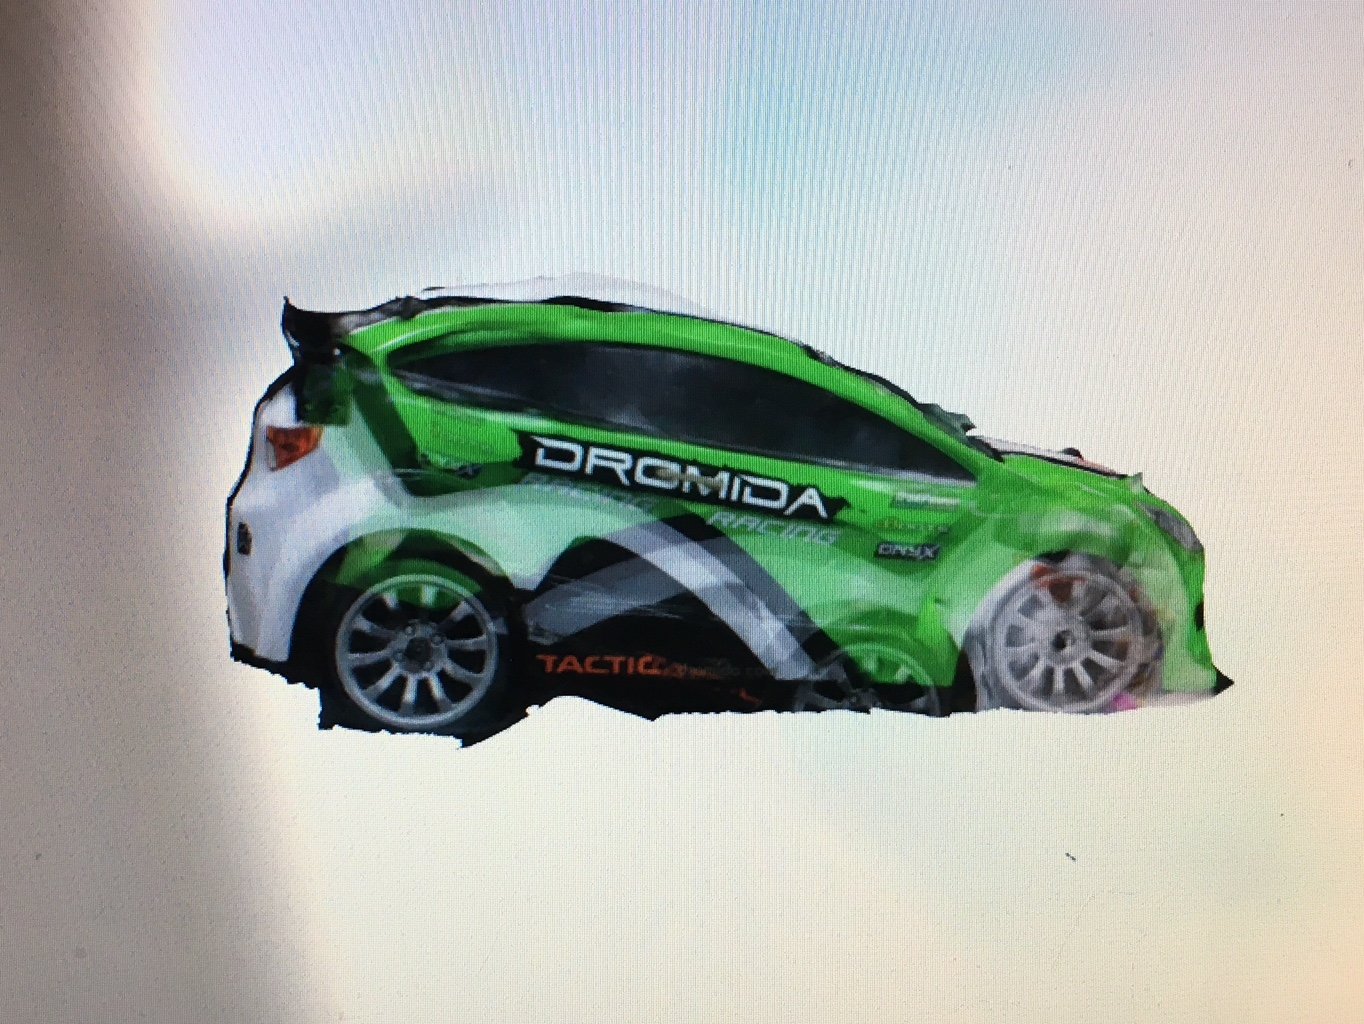 Race car 3D rendering